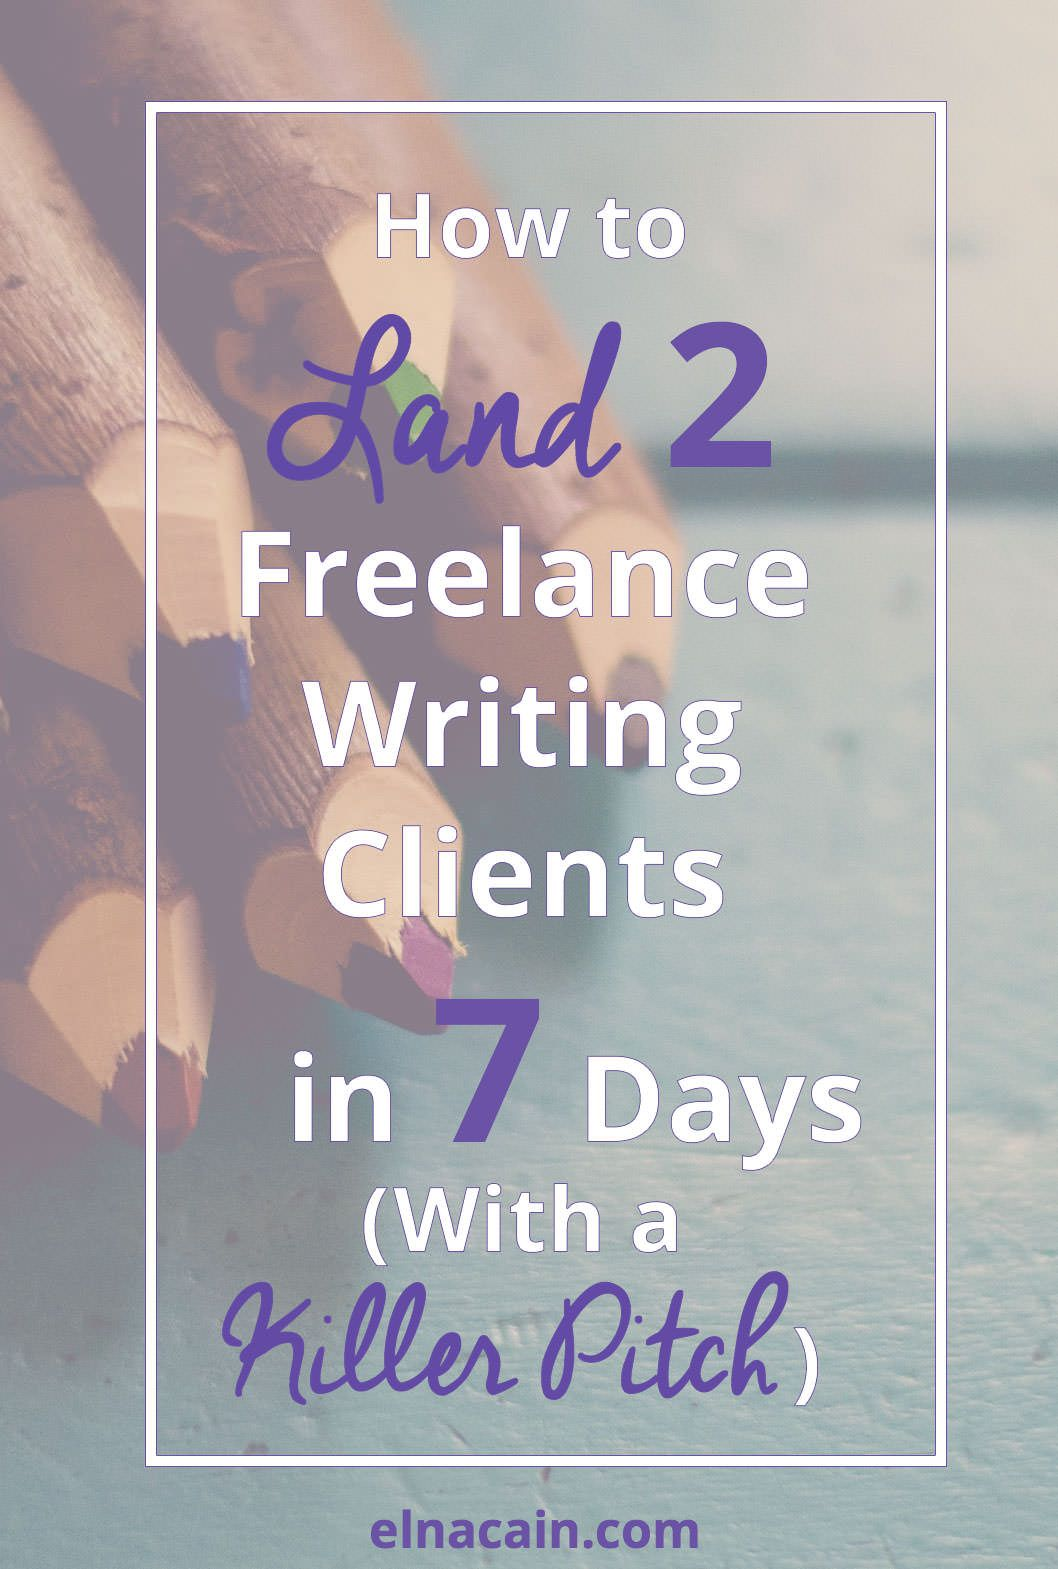 how to land high paying lance writing clients in days  how to land 2 high paying lance writing clients in 7 days a killer pitch